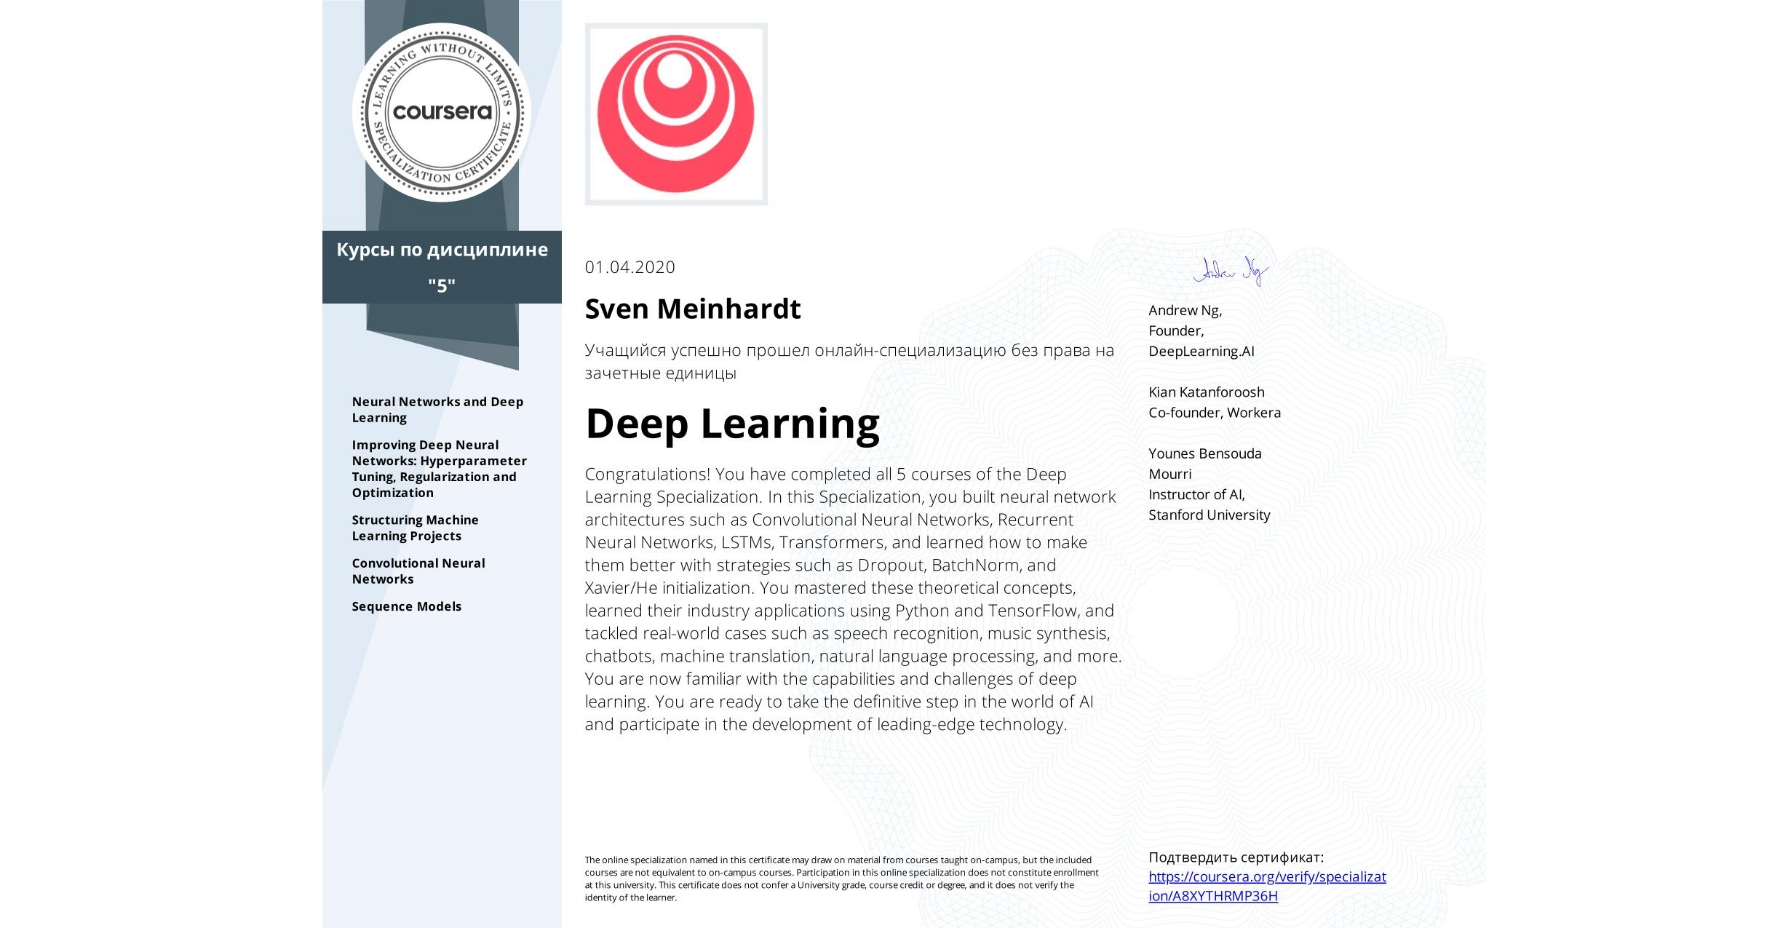 View certificate for Sven Meinhardt, Deep Learning, offered through Coursera. Congratulations! You have completed all five courses of the Deep Learning Specialization.  In this Specialization, you built neural network architectures such as Convolutional Neural Networks, Recurrent Neural Networks, LSTMs, Transformers and learned how to make them better with strategies such as Dropout, BatchNorm, Xavier/He initialization, and more. You mastered these theoretical concepts and their application using Python and TensorFlow and also tackled real-world case studies such as autonomous driving, sign language reading, music generation, computer vision, speech recognition, and natural language processing.   You're now familiar with the capabilities, challenges, and consequences of deep learning and are ready to participate in the development of leading-edge AI technology.